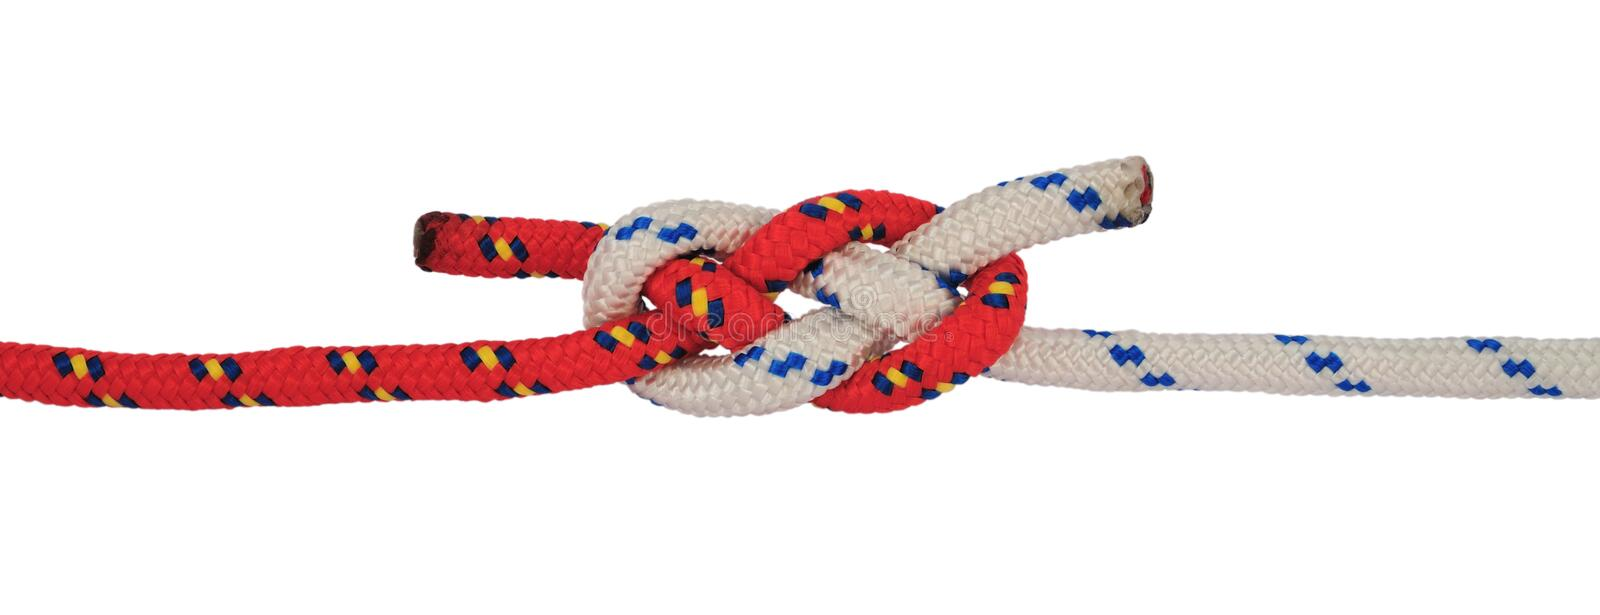 Carrick Bend stock photos